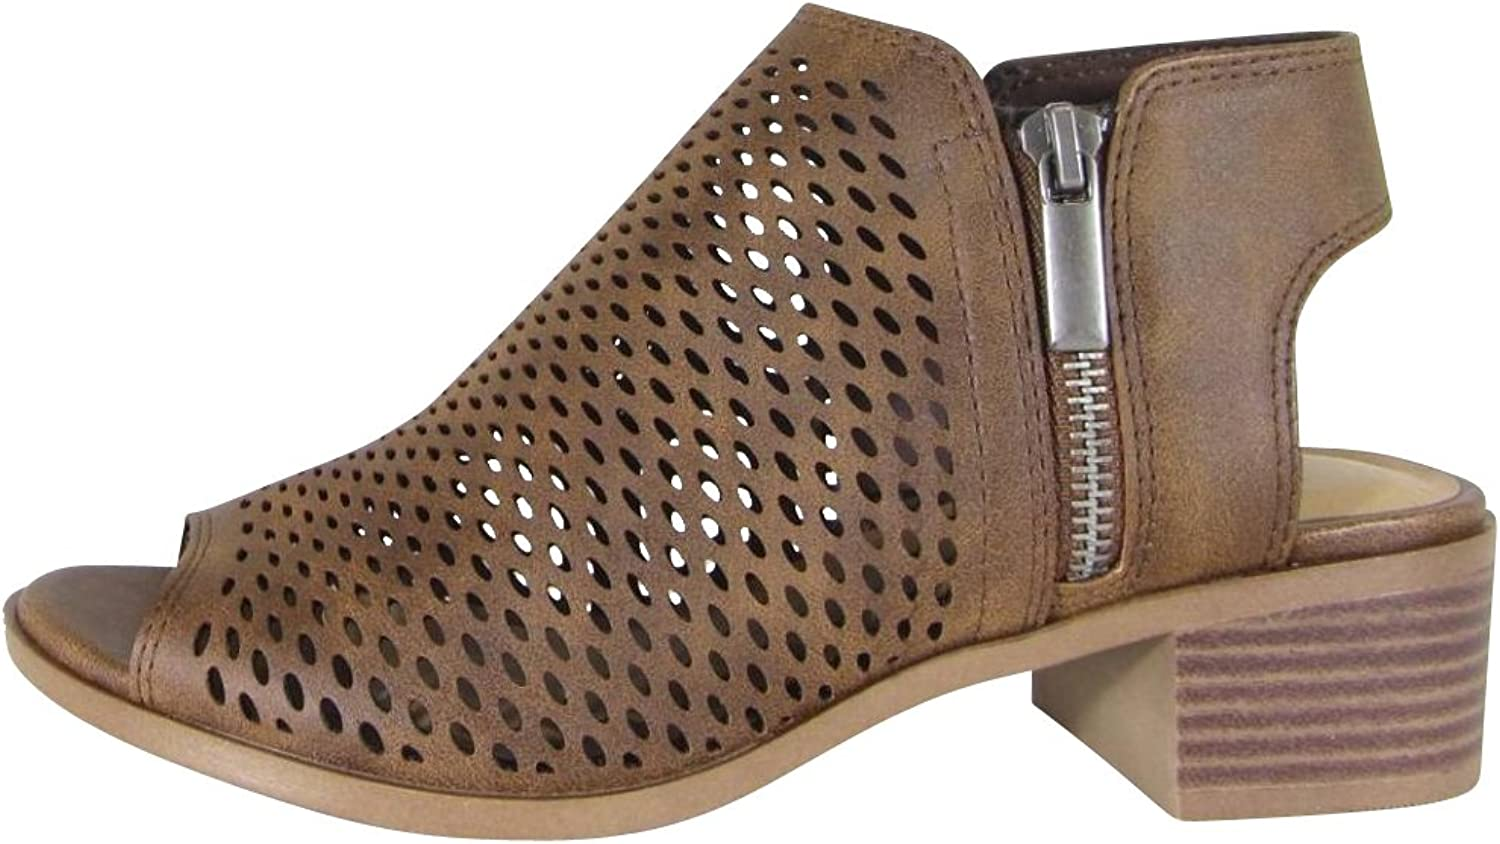 Cambridge Select Women's Open Toe Perforated Cutout Side Zip Chunky Stacked Heel Ankle Bootie